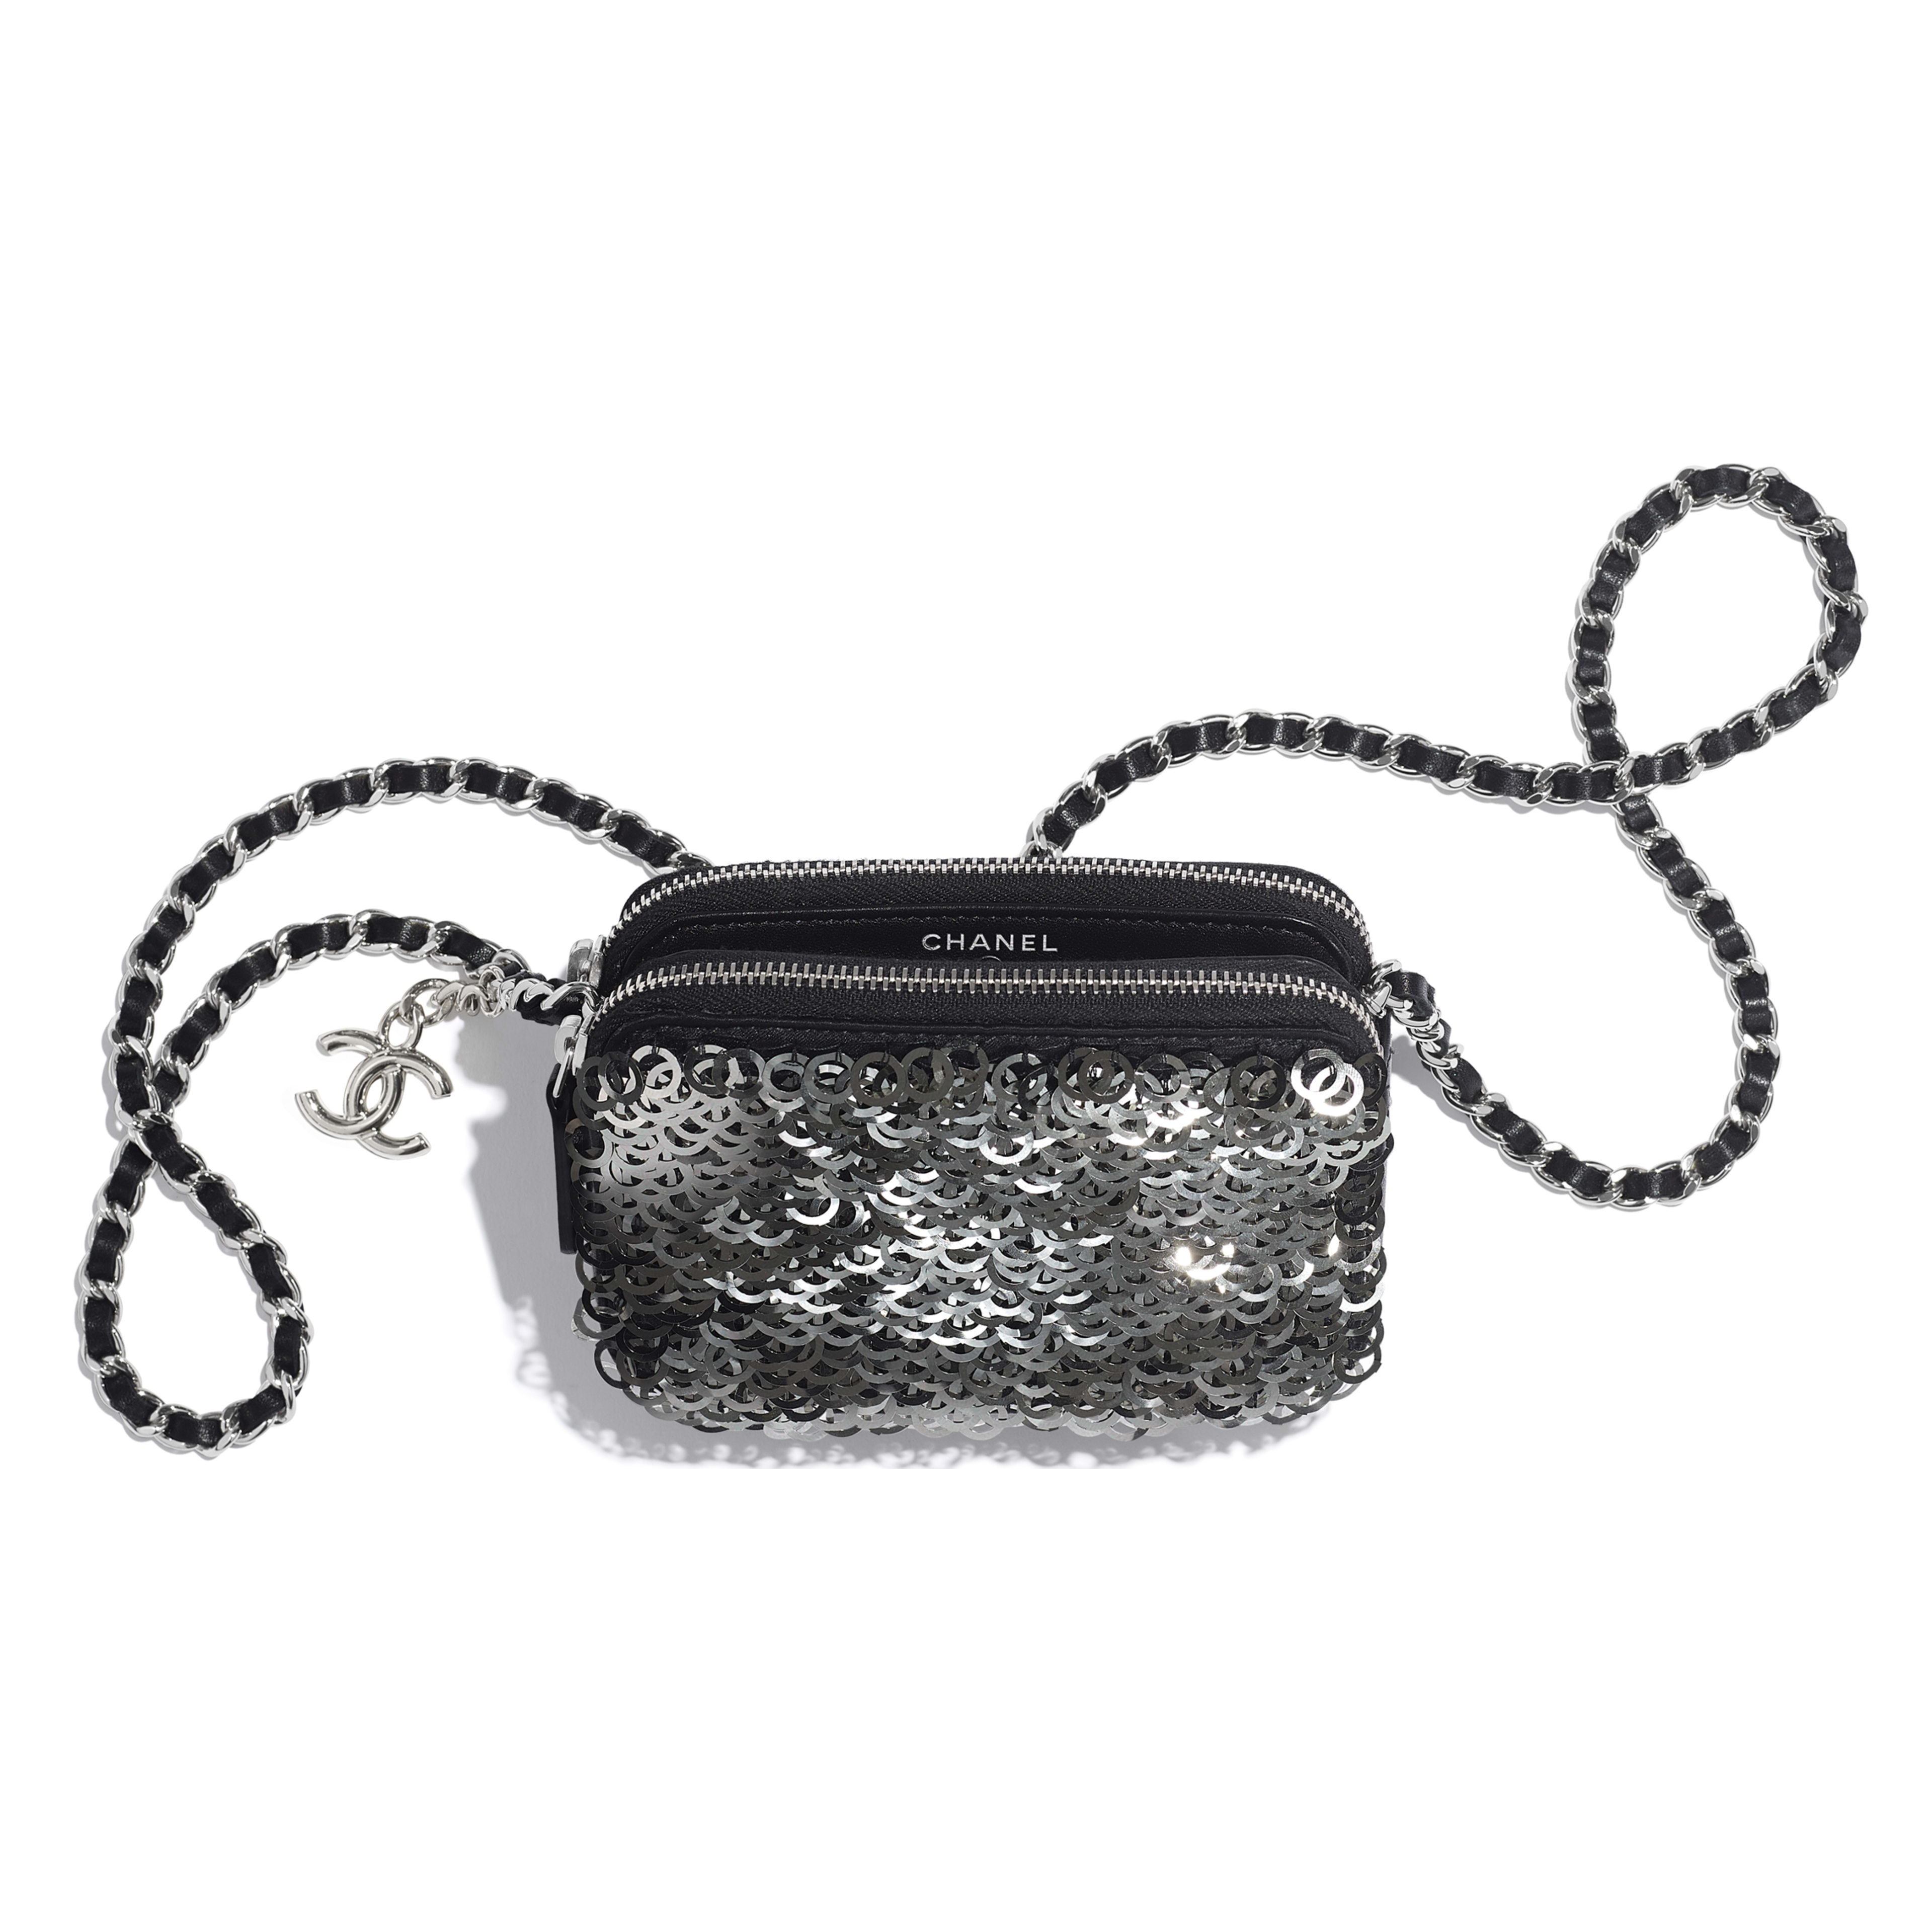 Clutch With Chain - Black, Silver & White - Lambskin, Sequins & Silver-Tone Metal - Other view - see full sized version